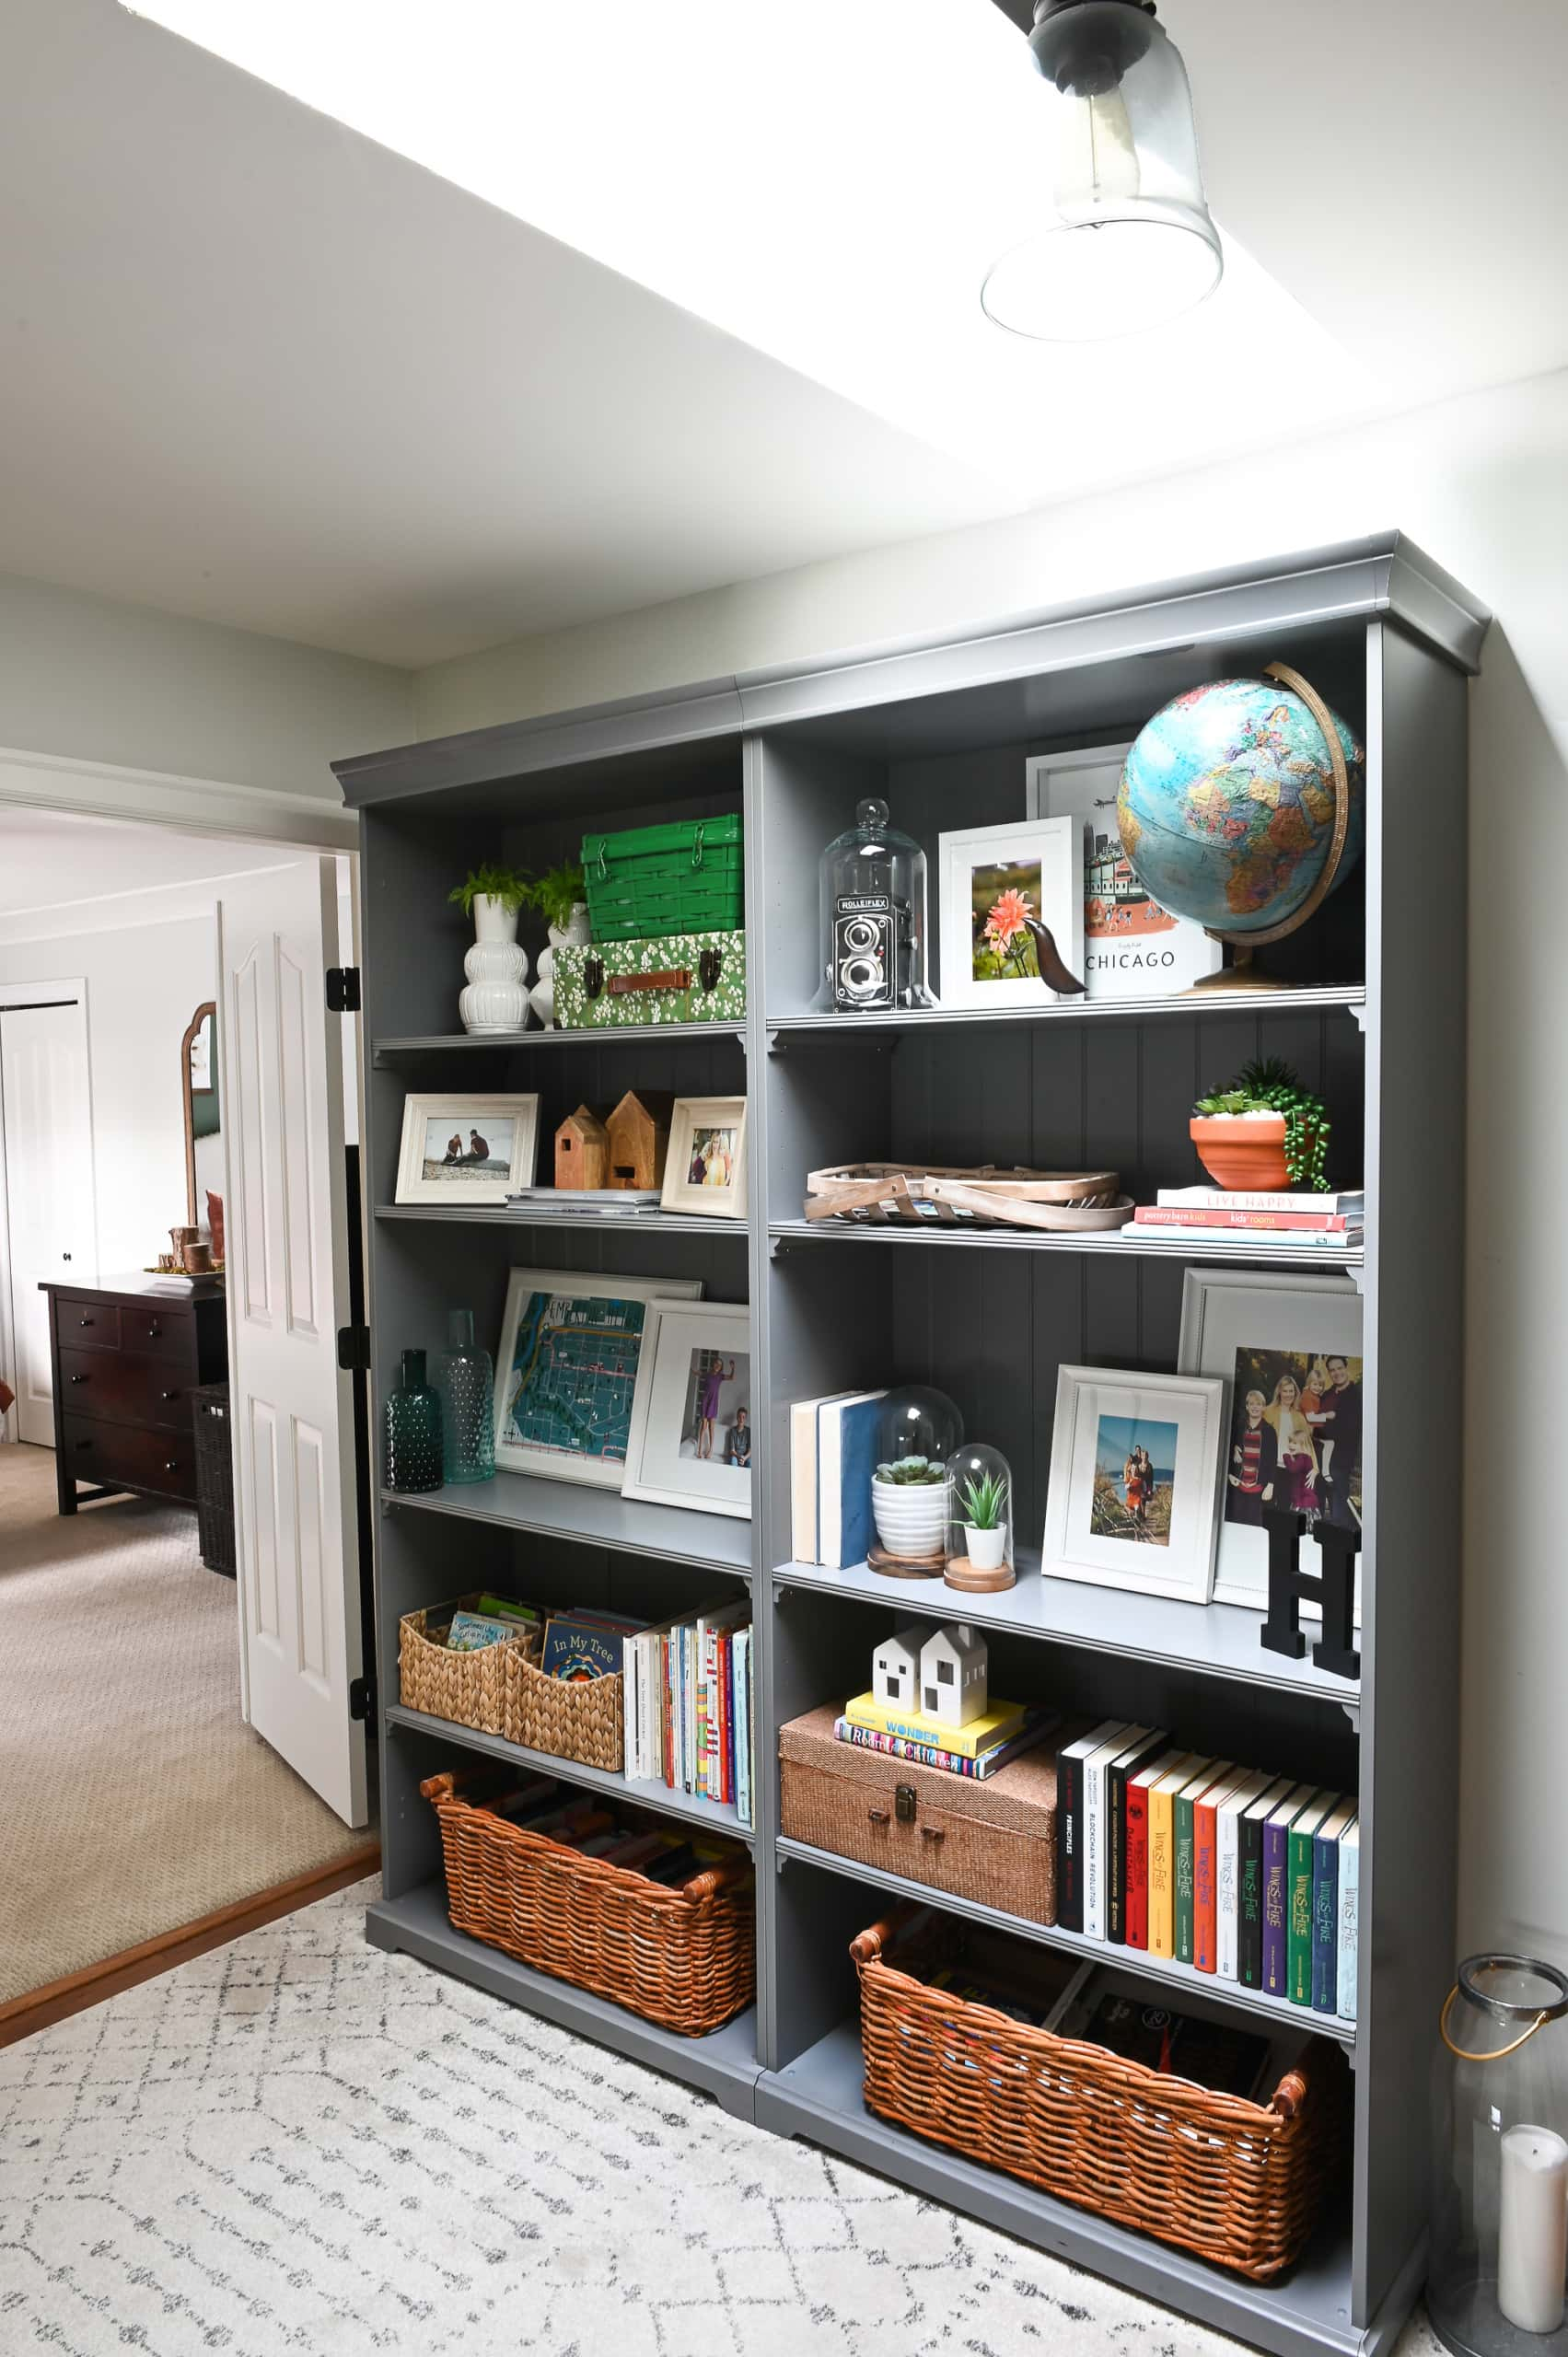 Styled bookshelves in a family-friendly home